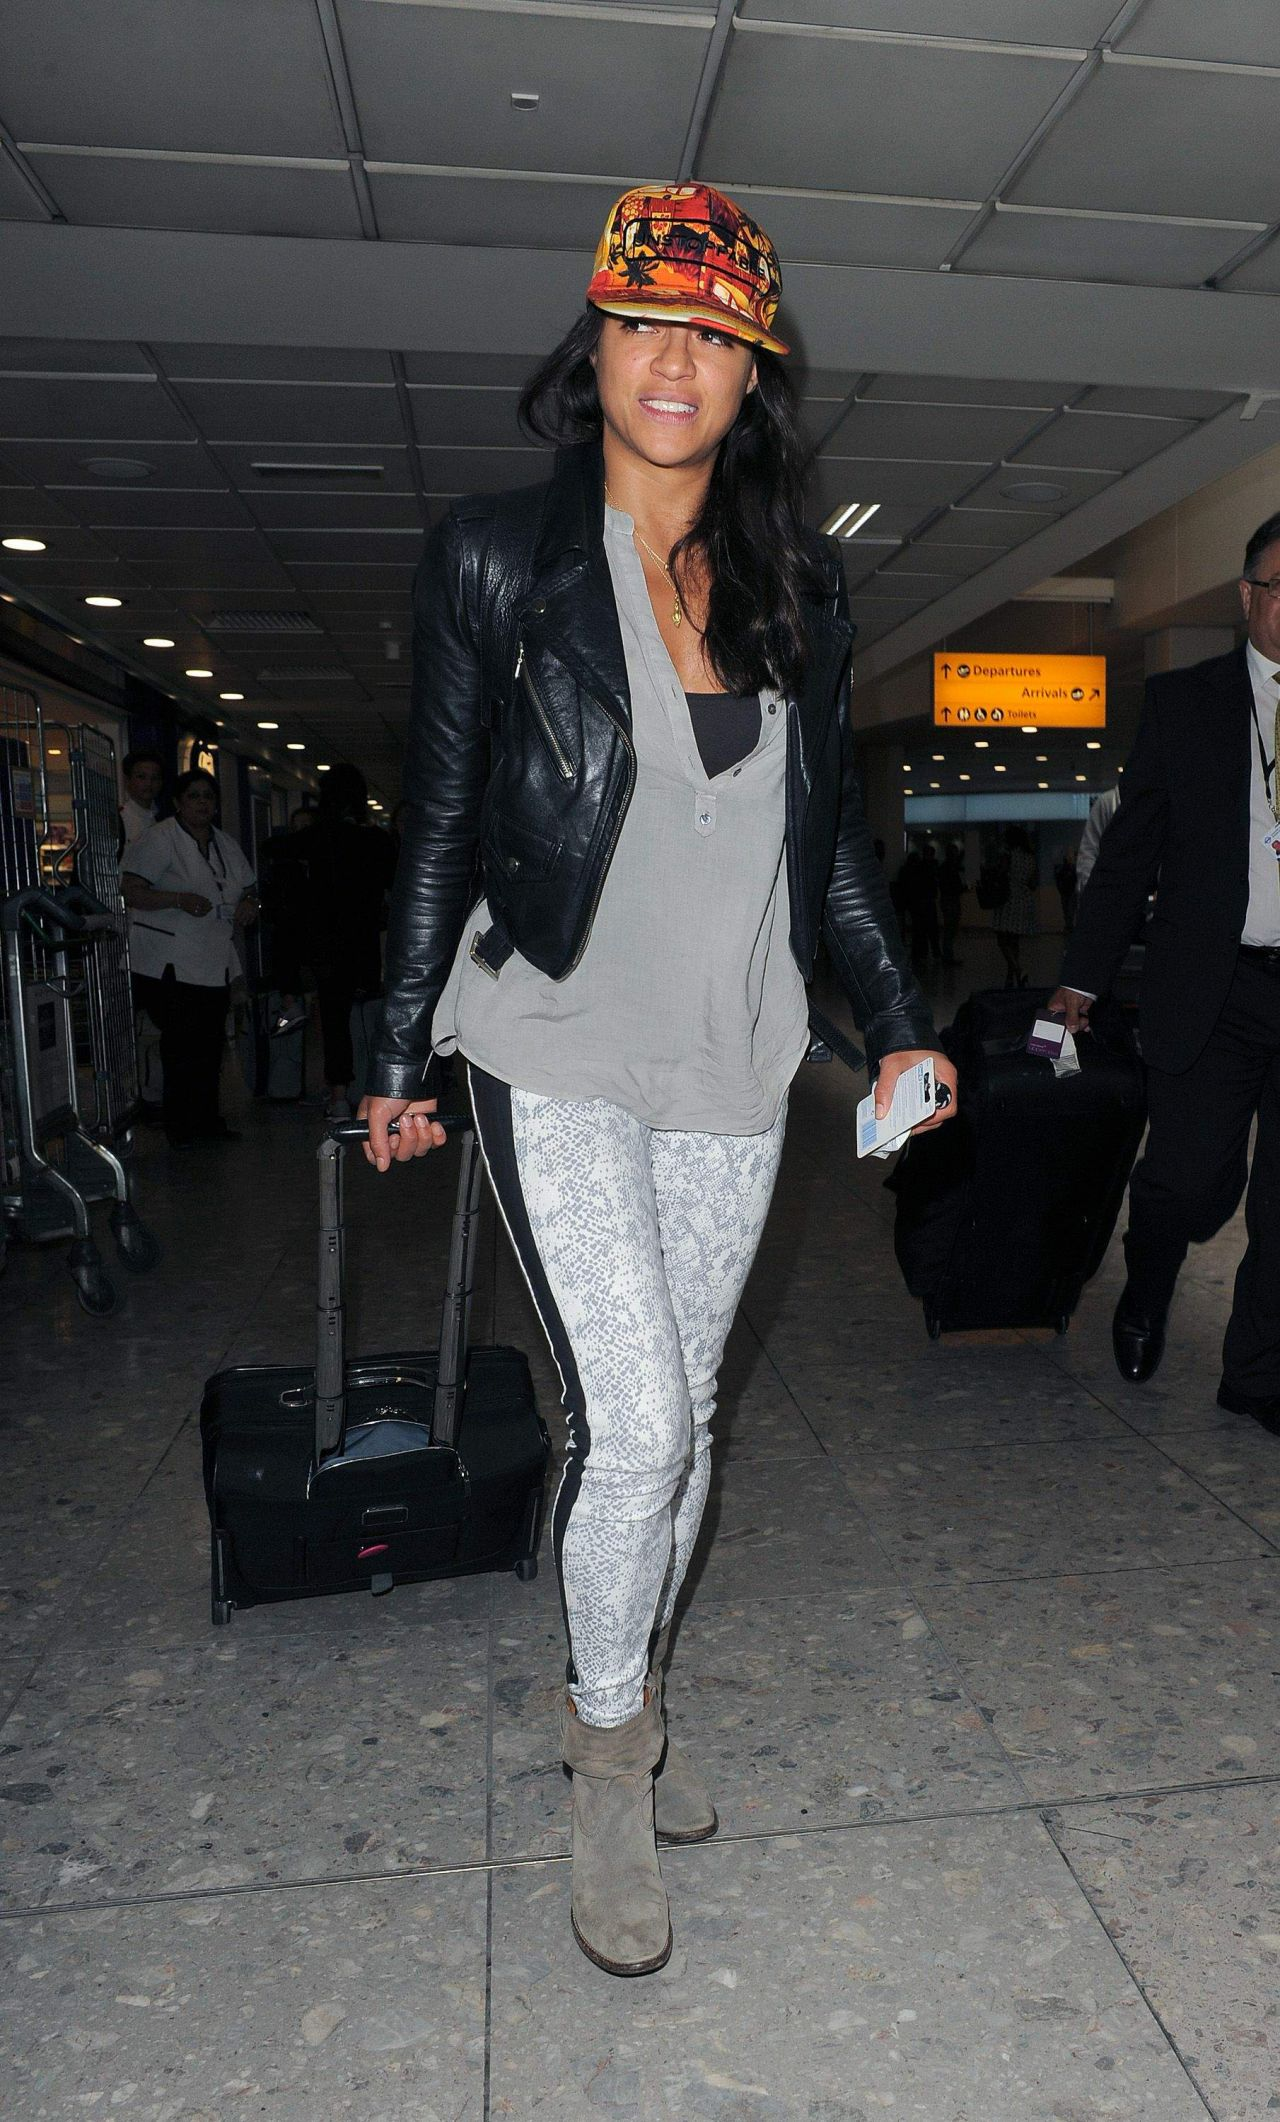 Michelle Rodriguez Arrives at Heathrow Airport in London - June 2014